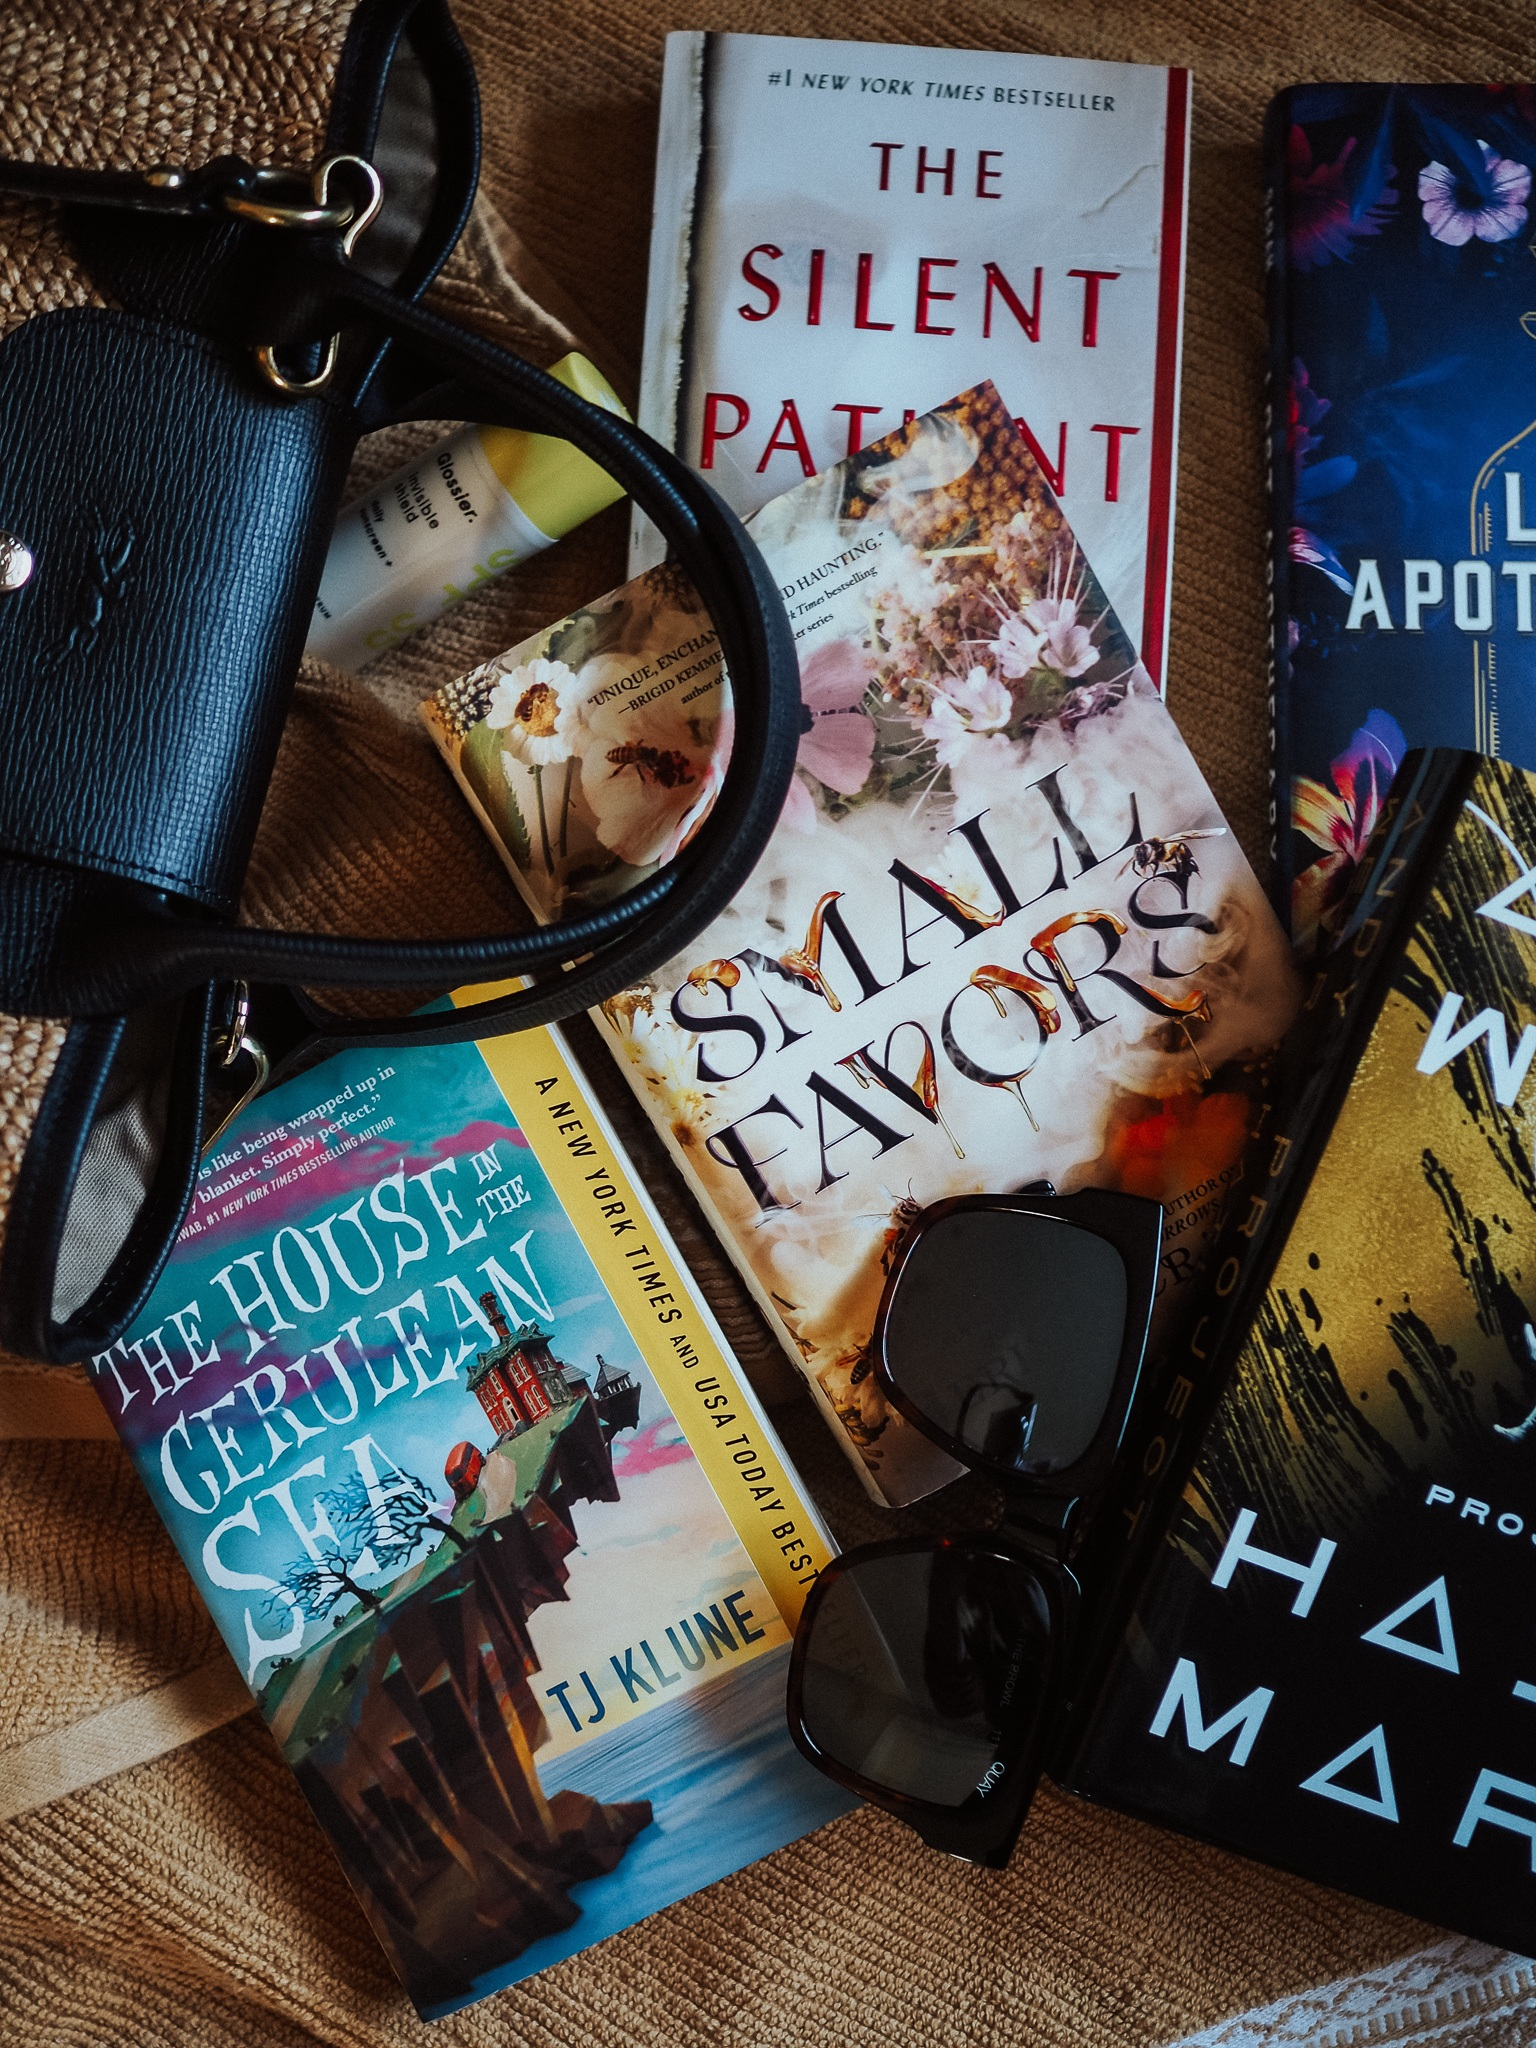 Beach reads don't have to be for summer reading lists only. These page turners will keep you enthralled year round.